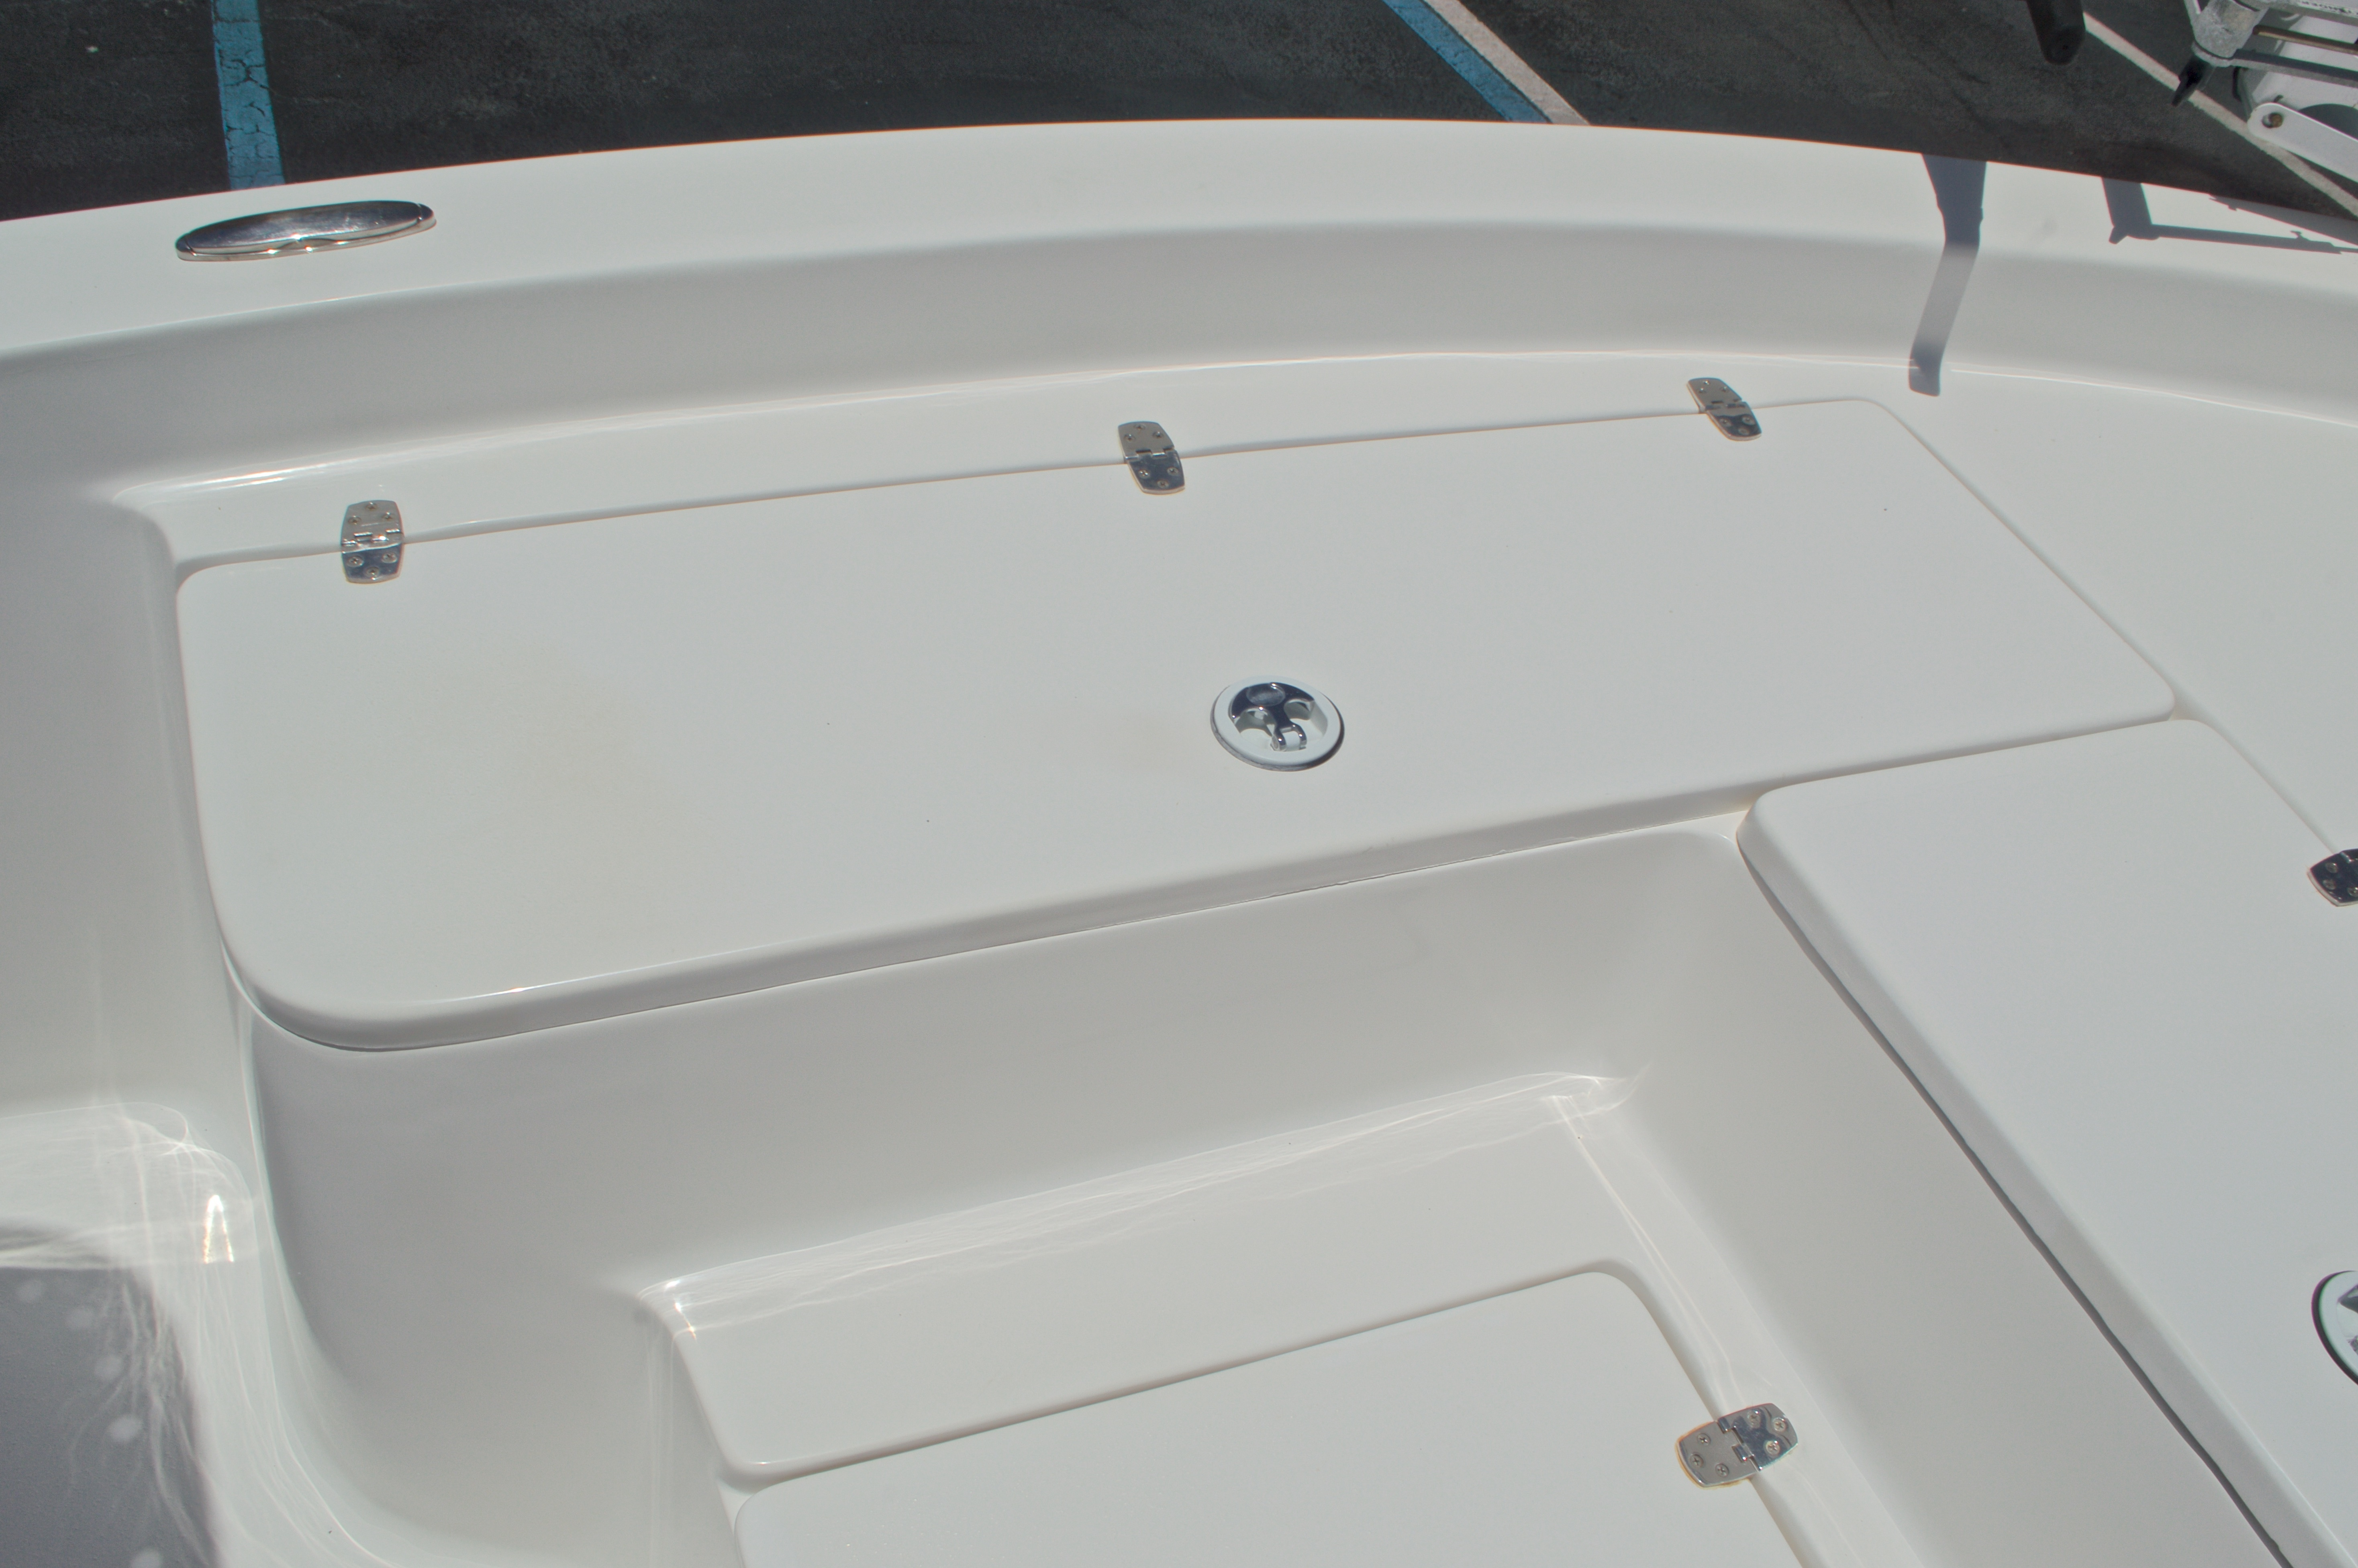 Thumbnail 51 for Used 2005 Sea Chaser 245 Bay Runner LX boat for sale in West Palm Beach, FL